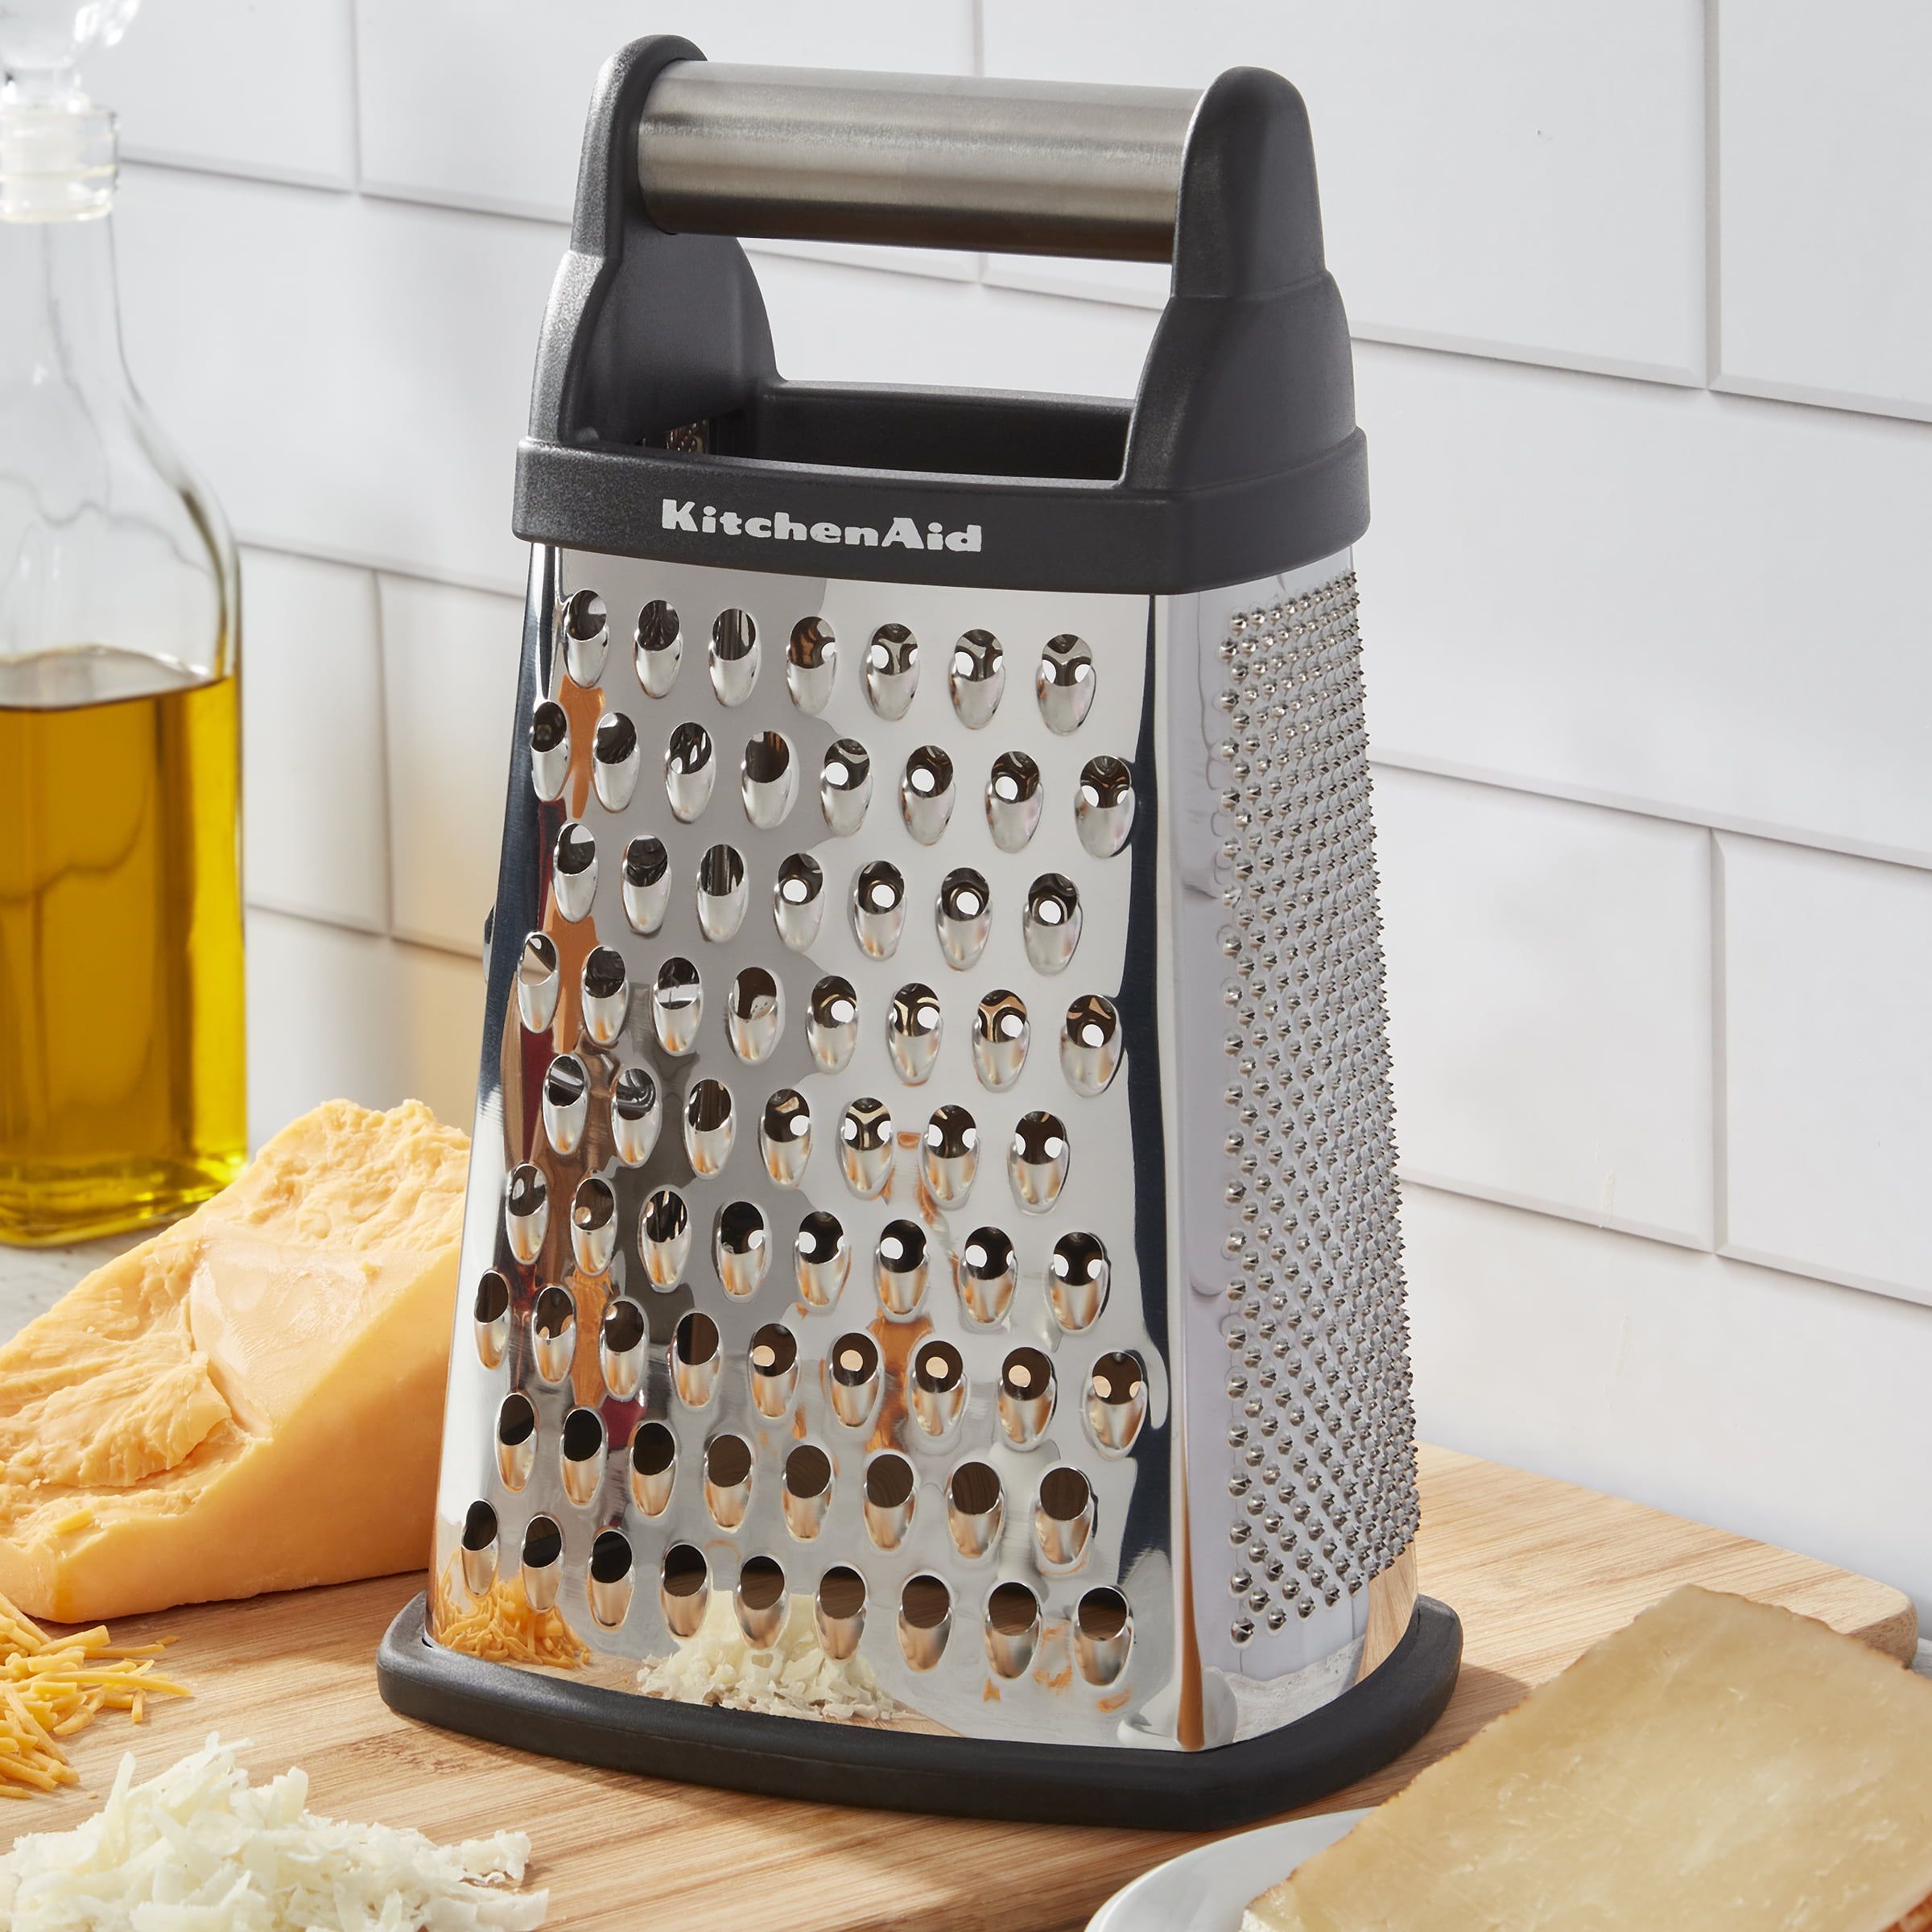 Red Cheese Grater,Cheese//Vegetable Grater with Container/&Lid,Stainless Steel,for Soft Cheddar Cheeses//Ginger//Vegetables//Butter//Chocolate